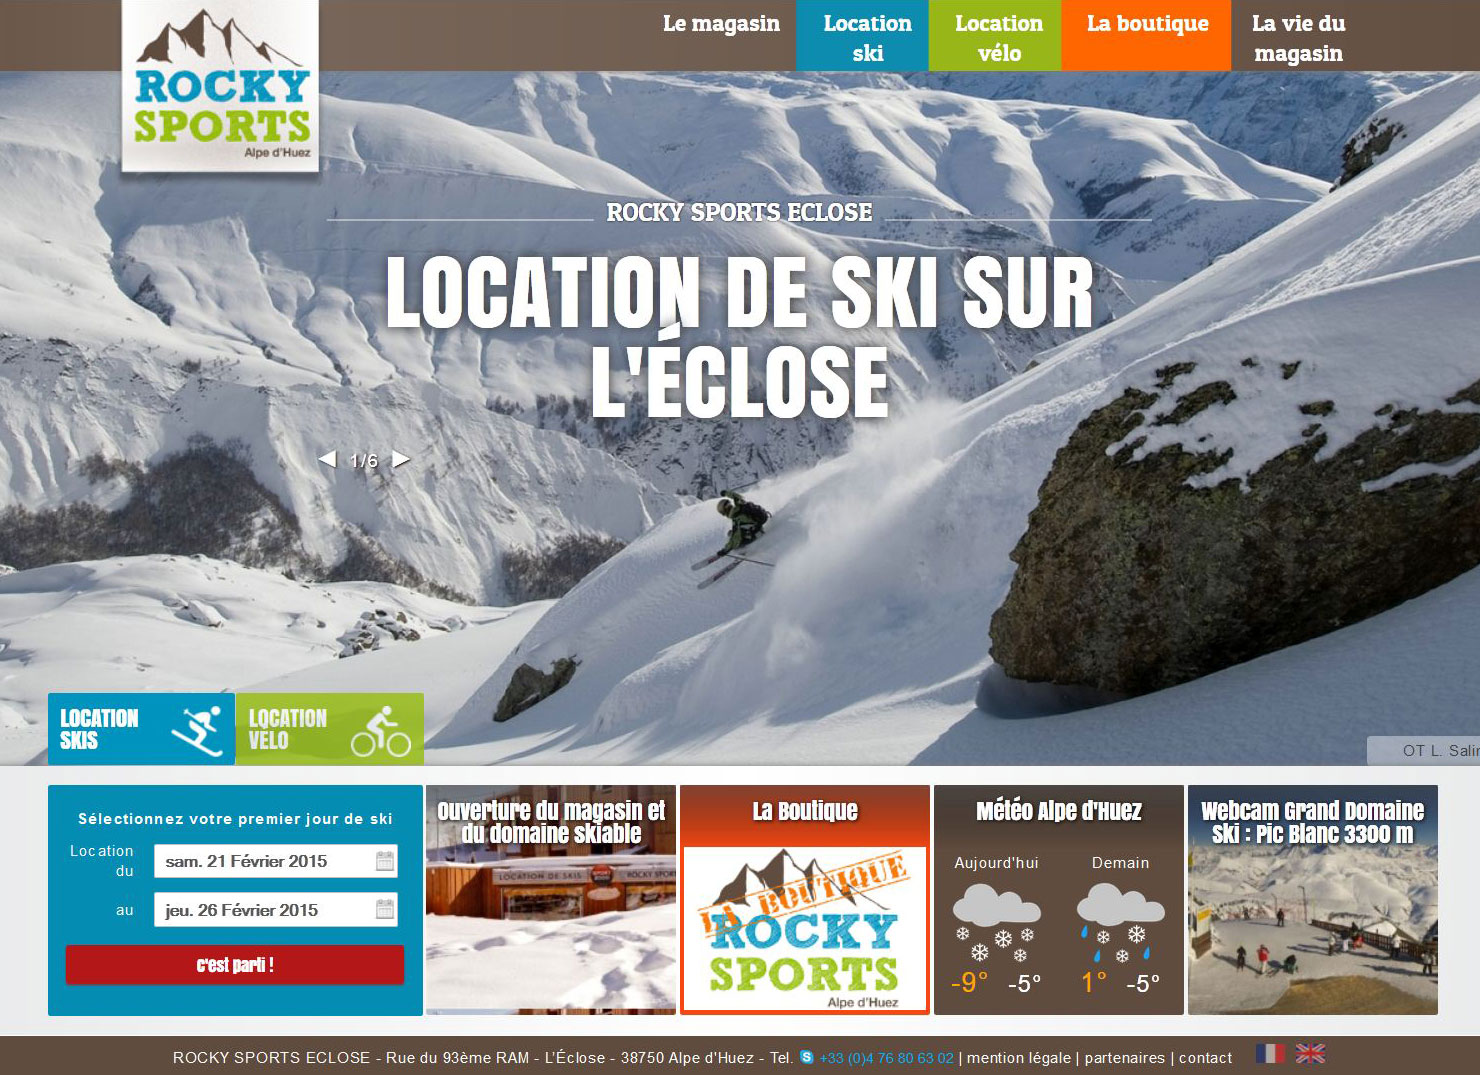 Site de location de ski Rocky Sports